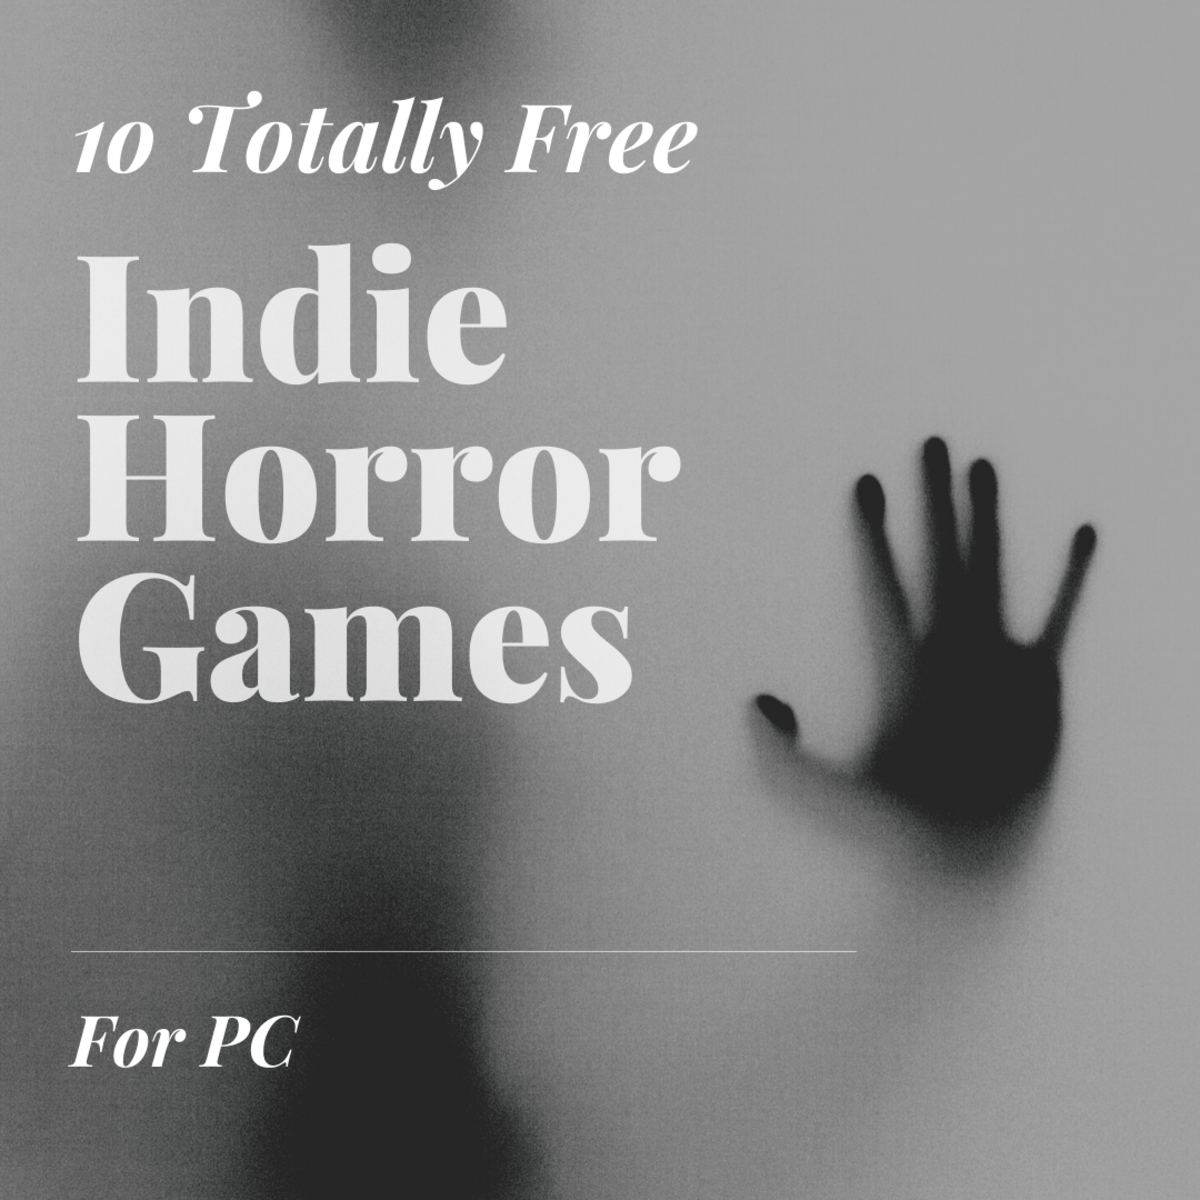 Check out these free and creepy games!